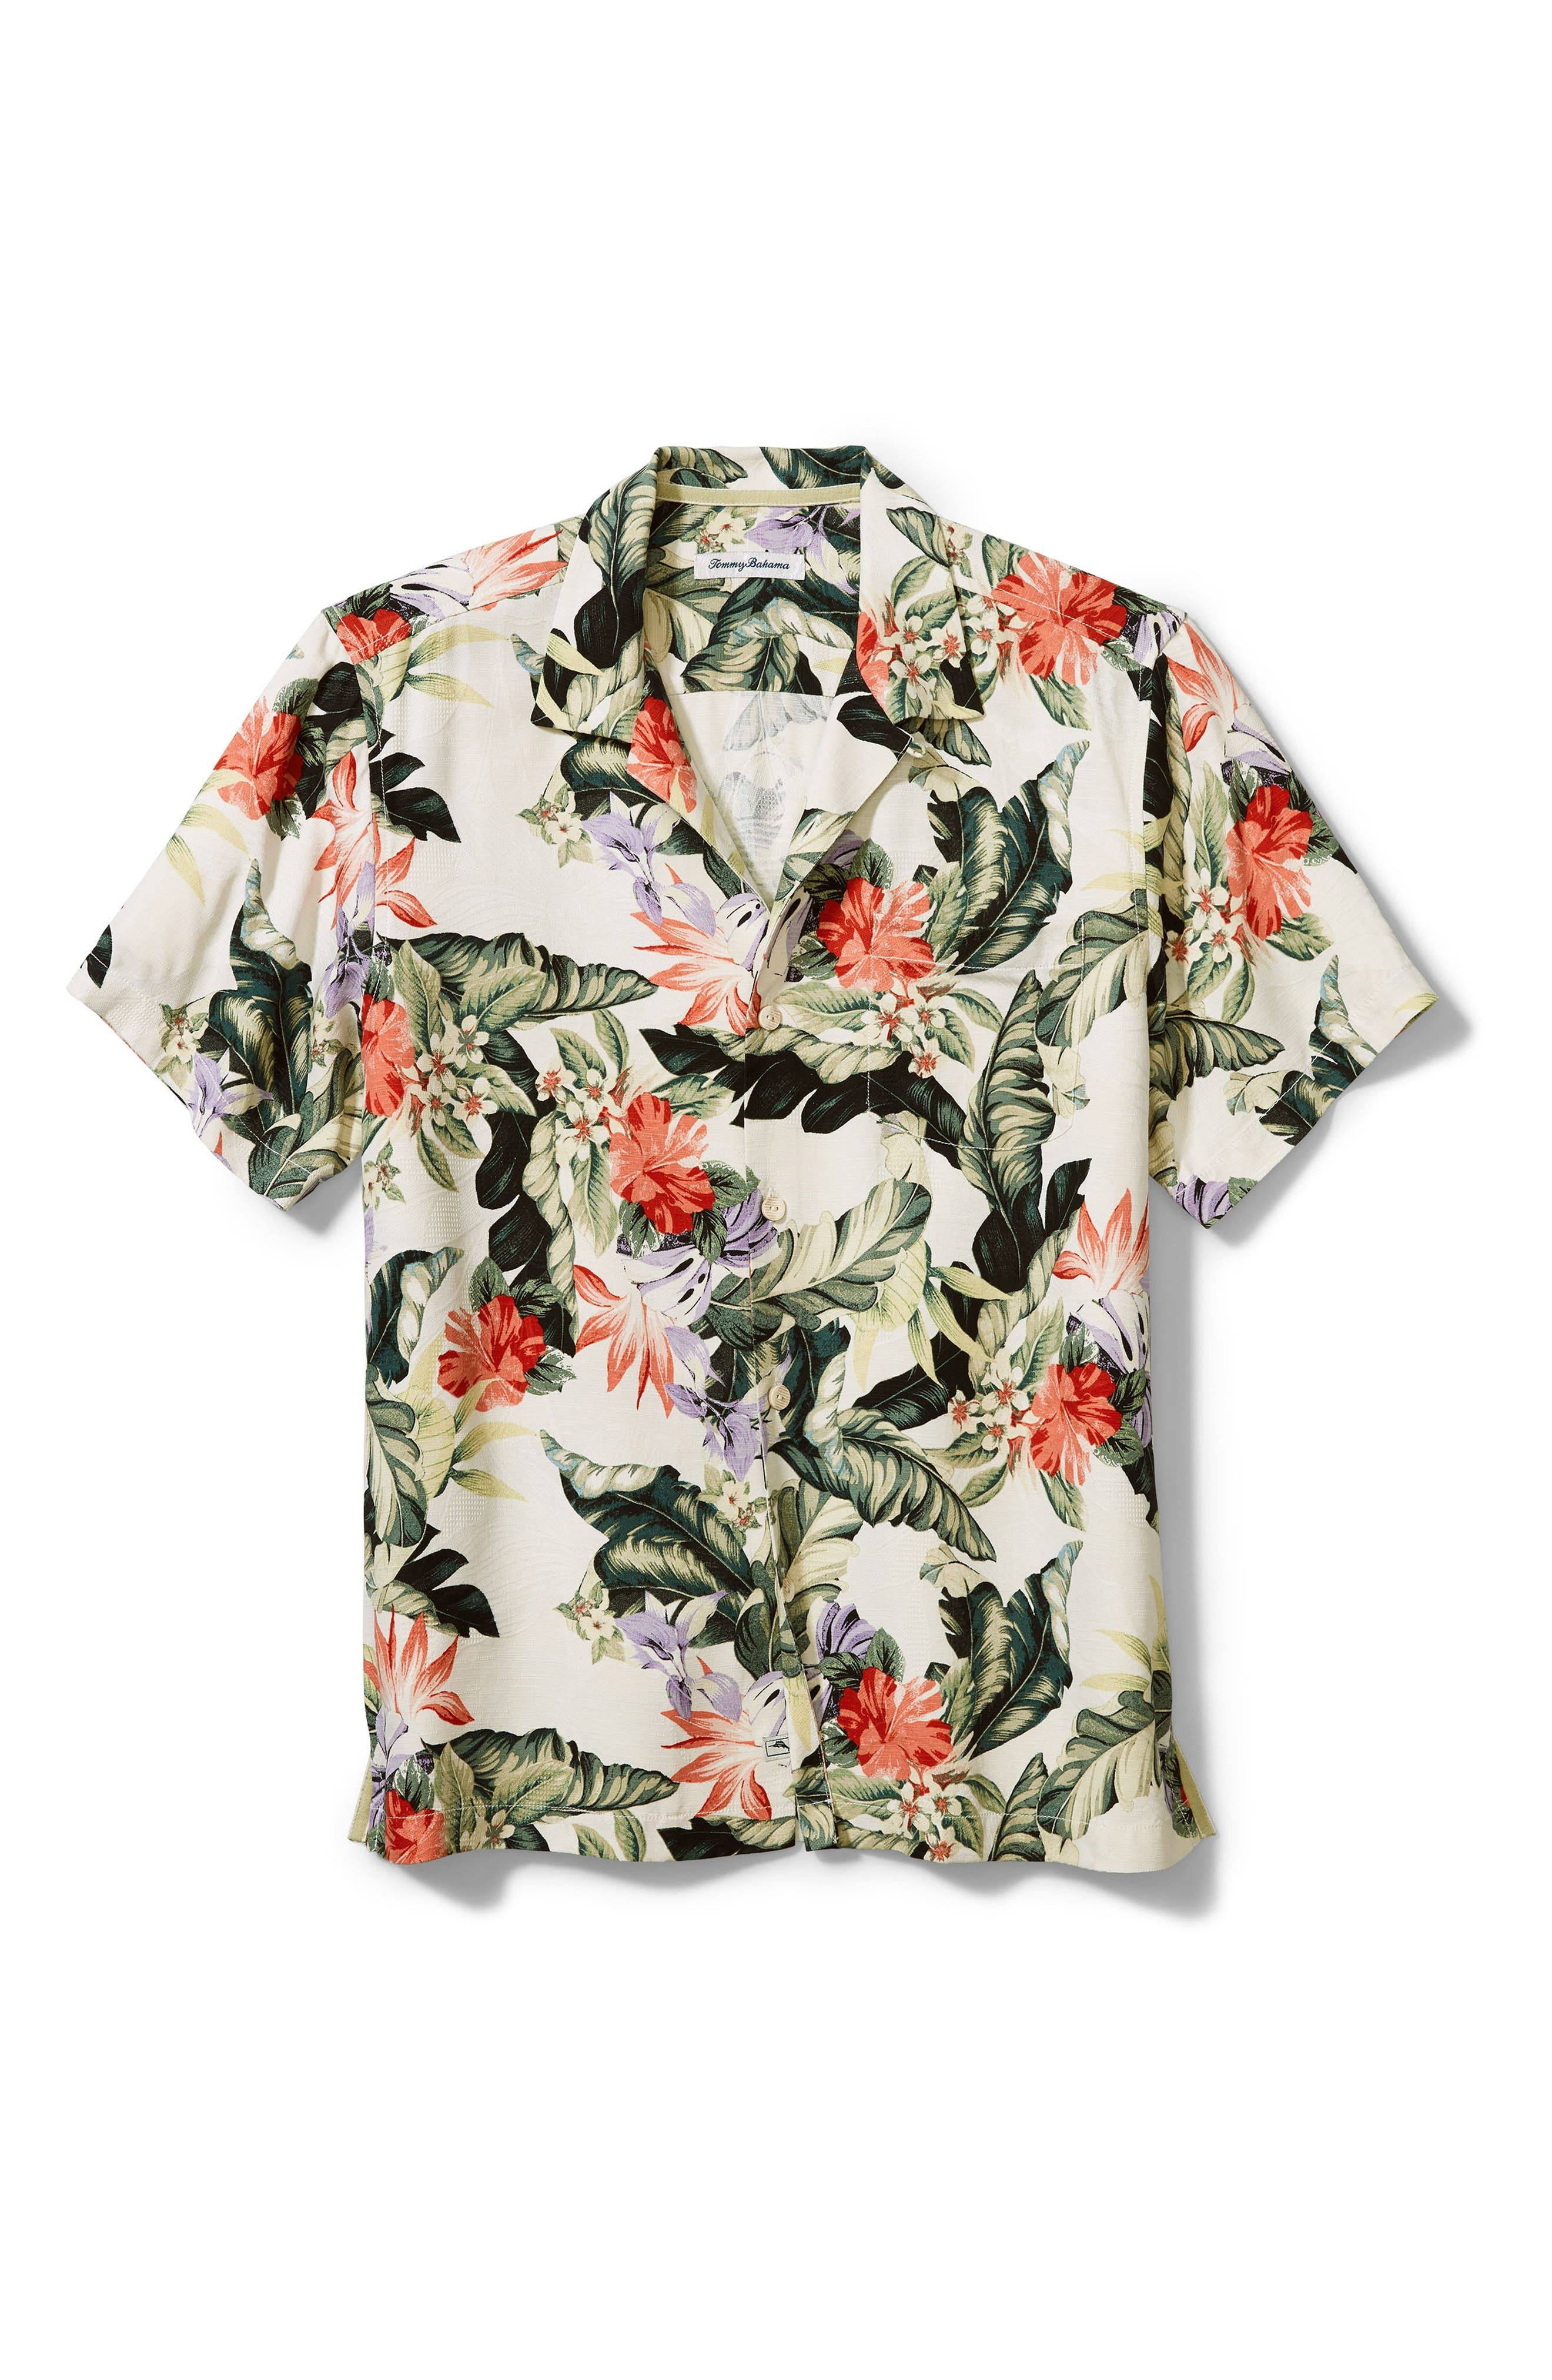 Tommy Bahama Men's Tommy Bahama Garden Of Hope & Courage Short Sleeve Silk Button-Up Shirt, Size 2 - White